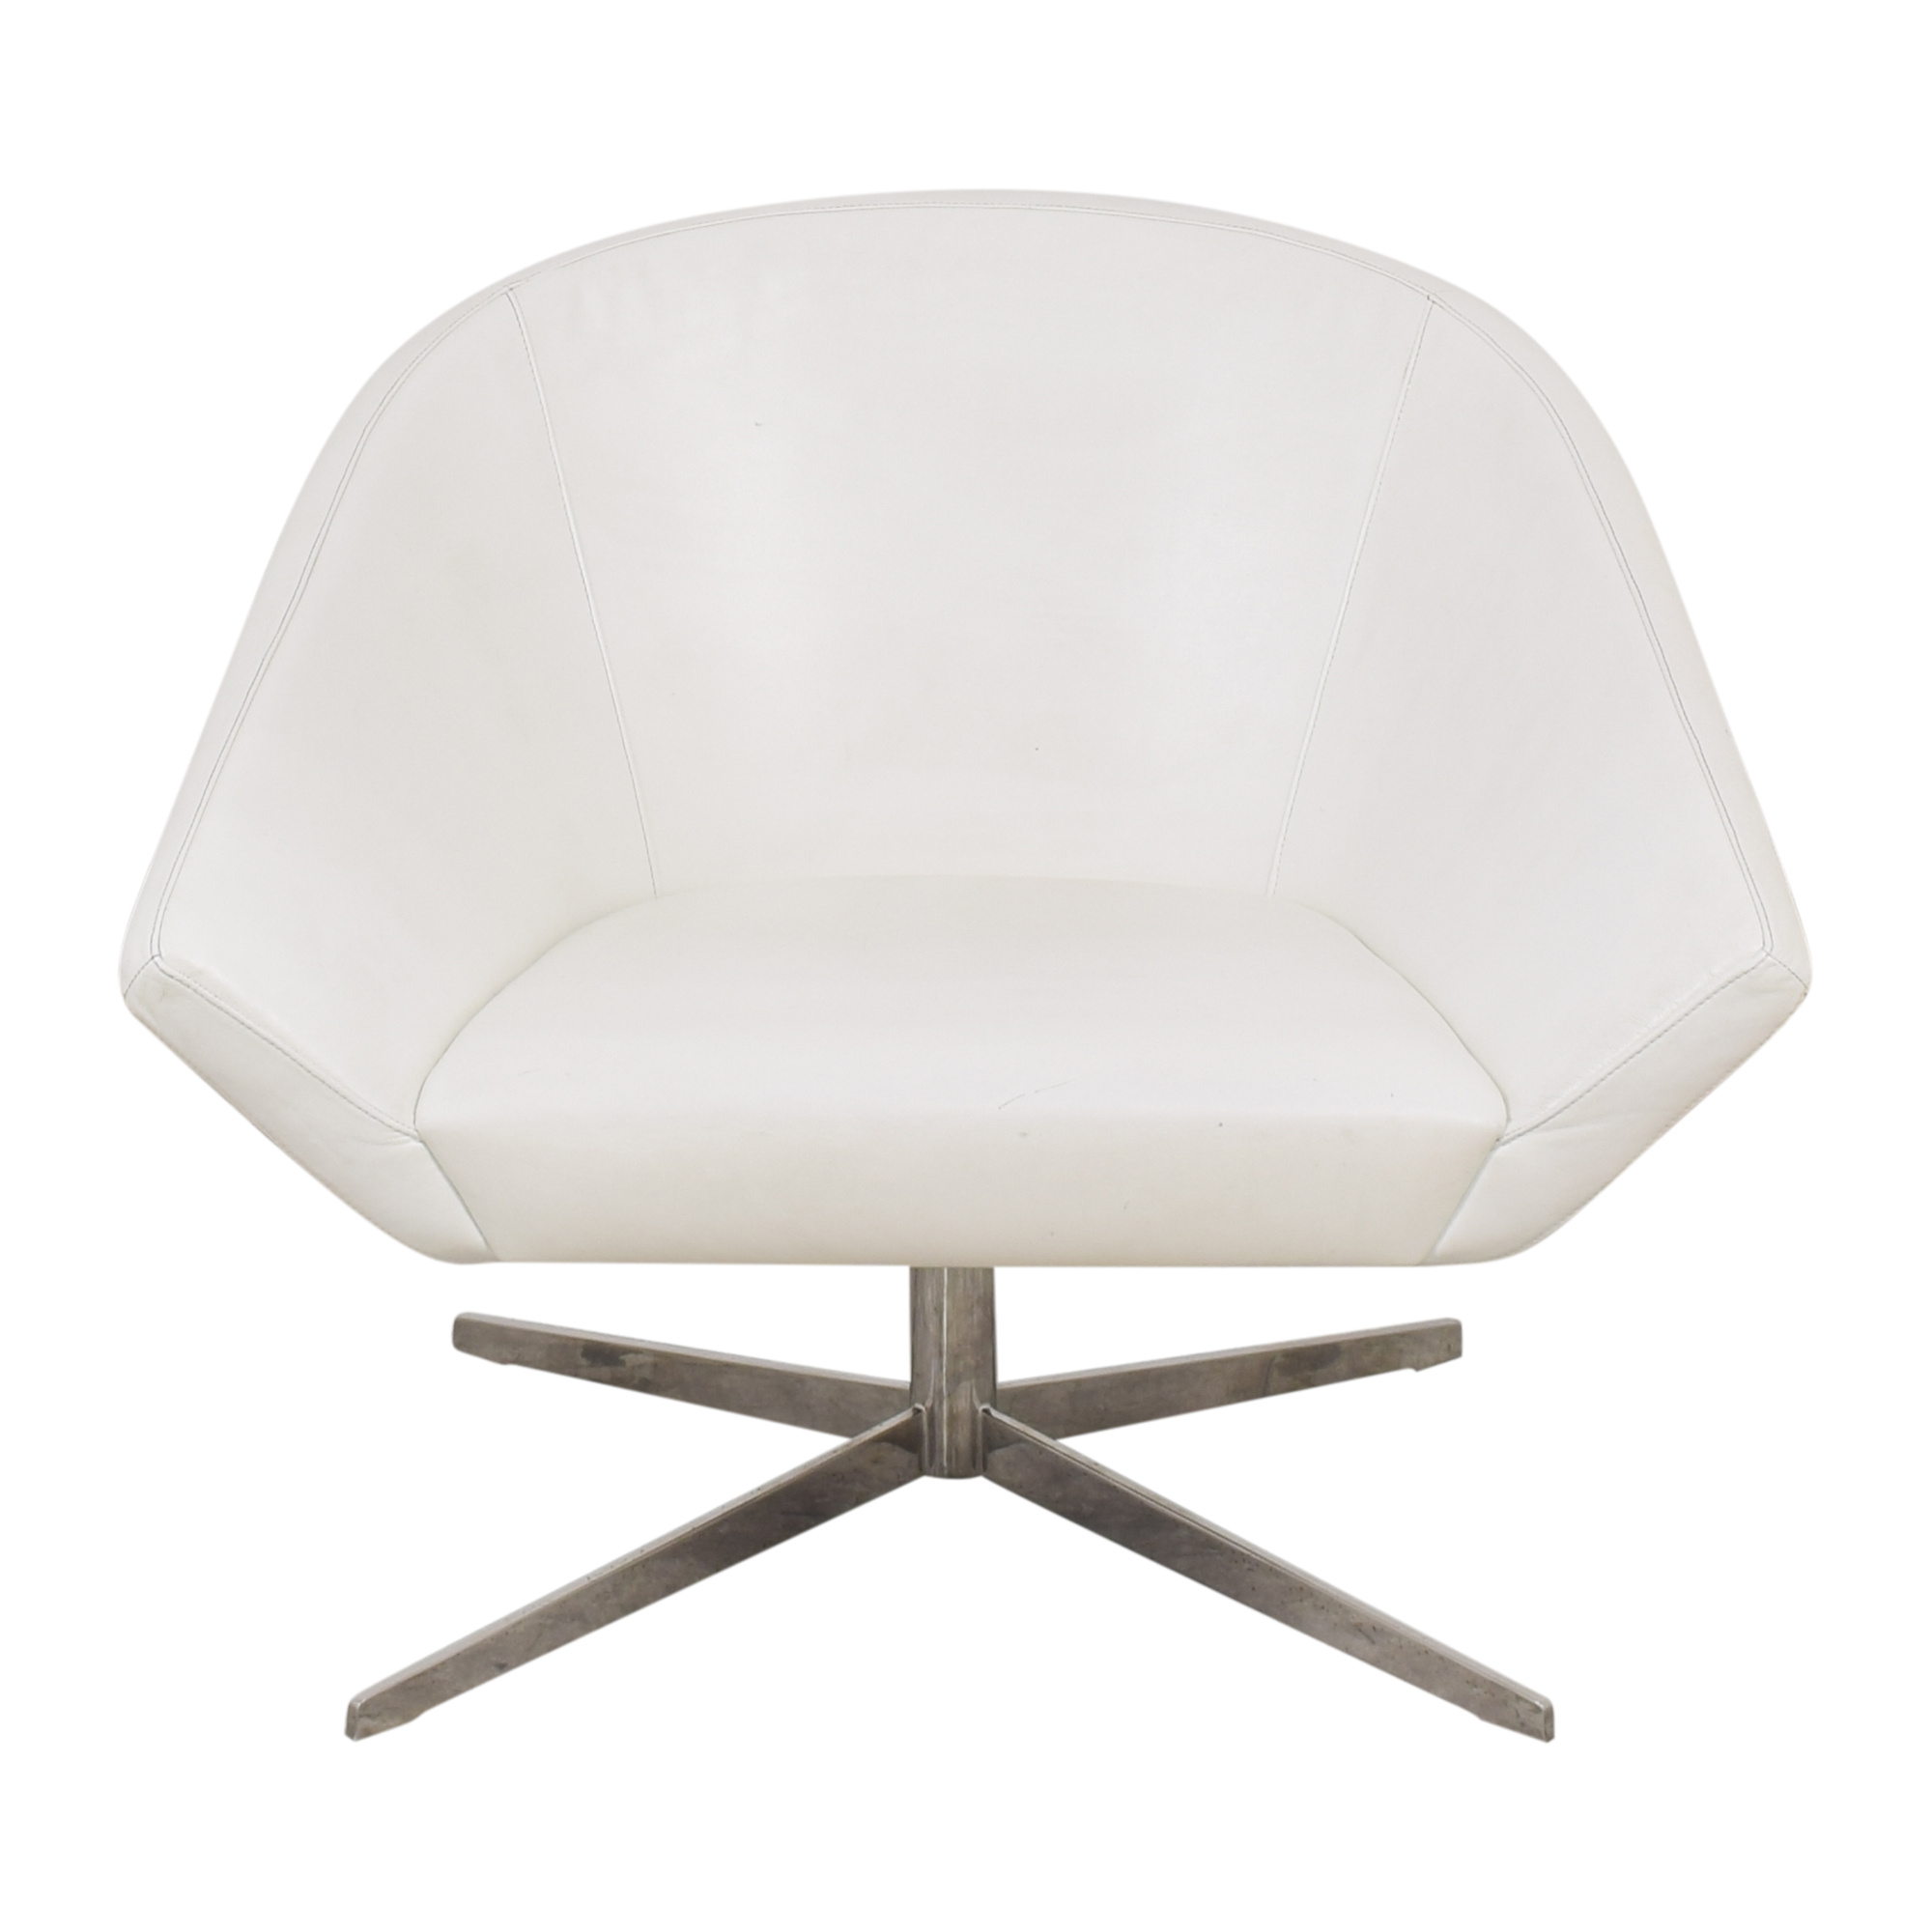 Bernhardt Bernhardt Remy Lounge Chair discount